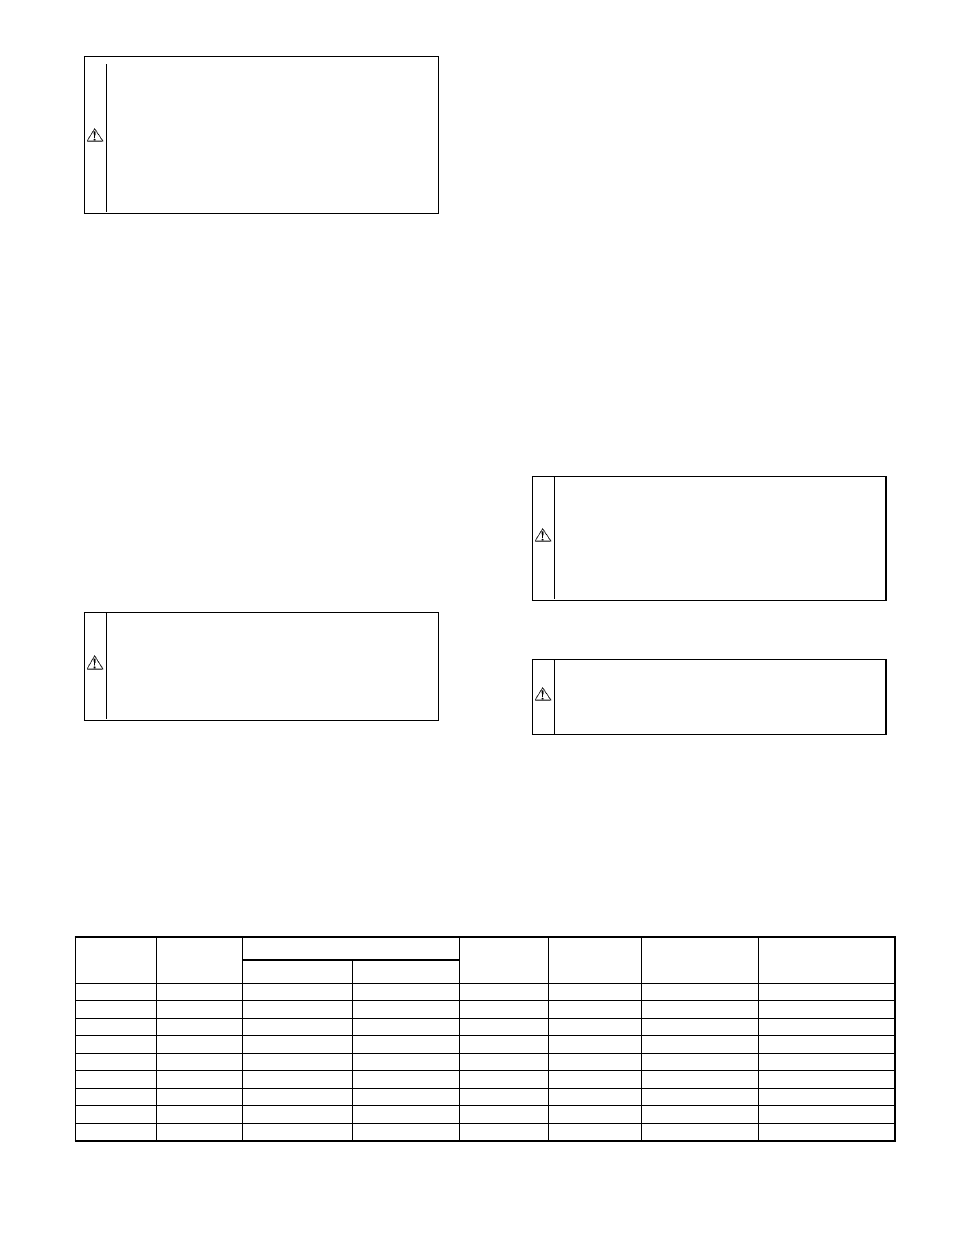 Bryant 373lav User Manual Page 11 20 Inducer Motor Wire Diagram